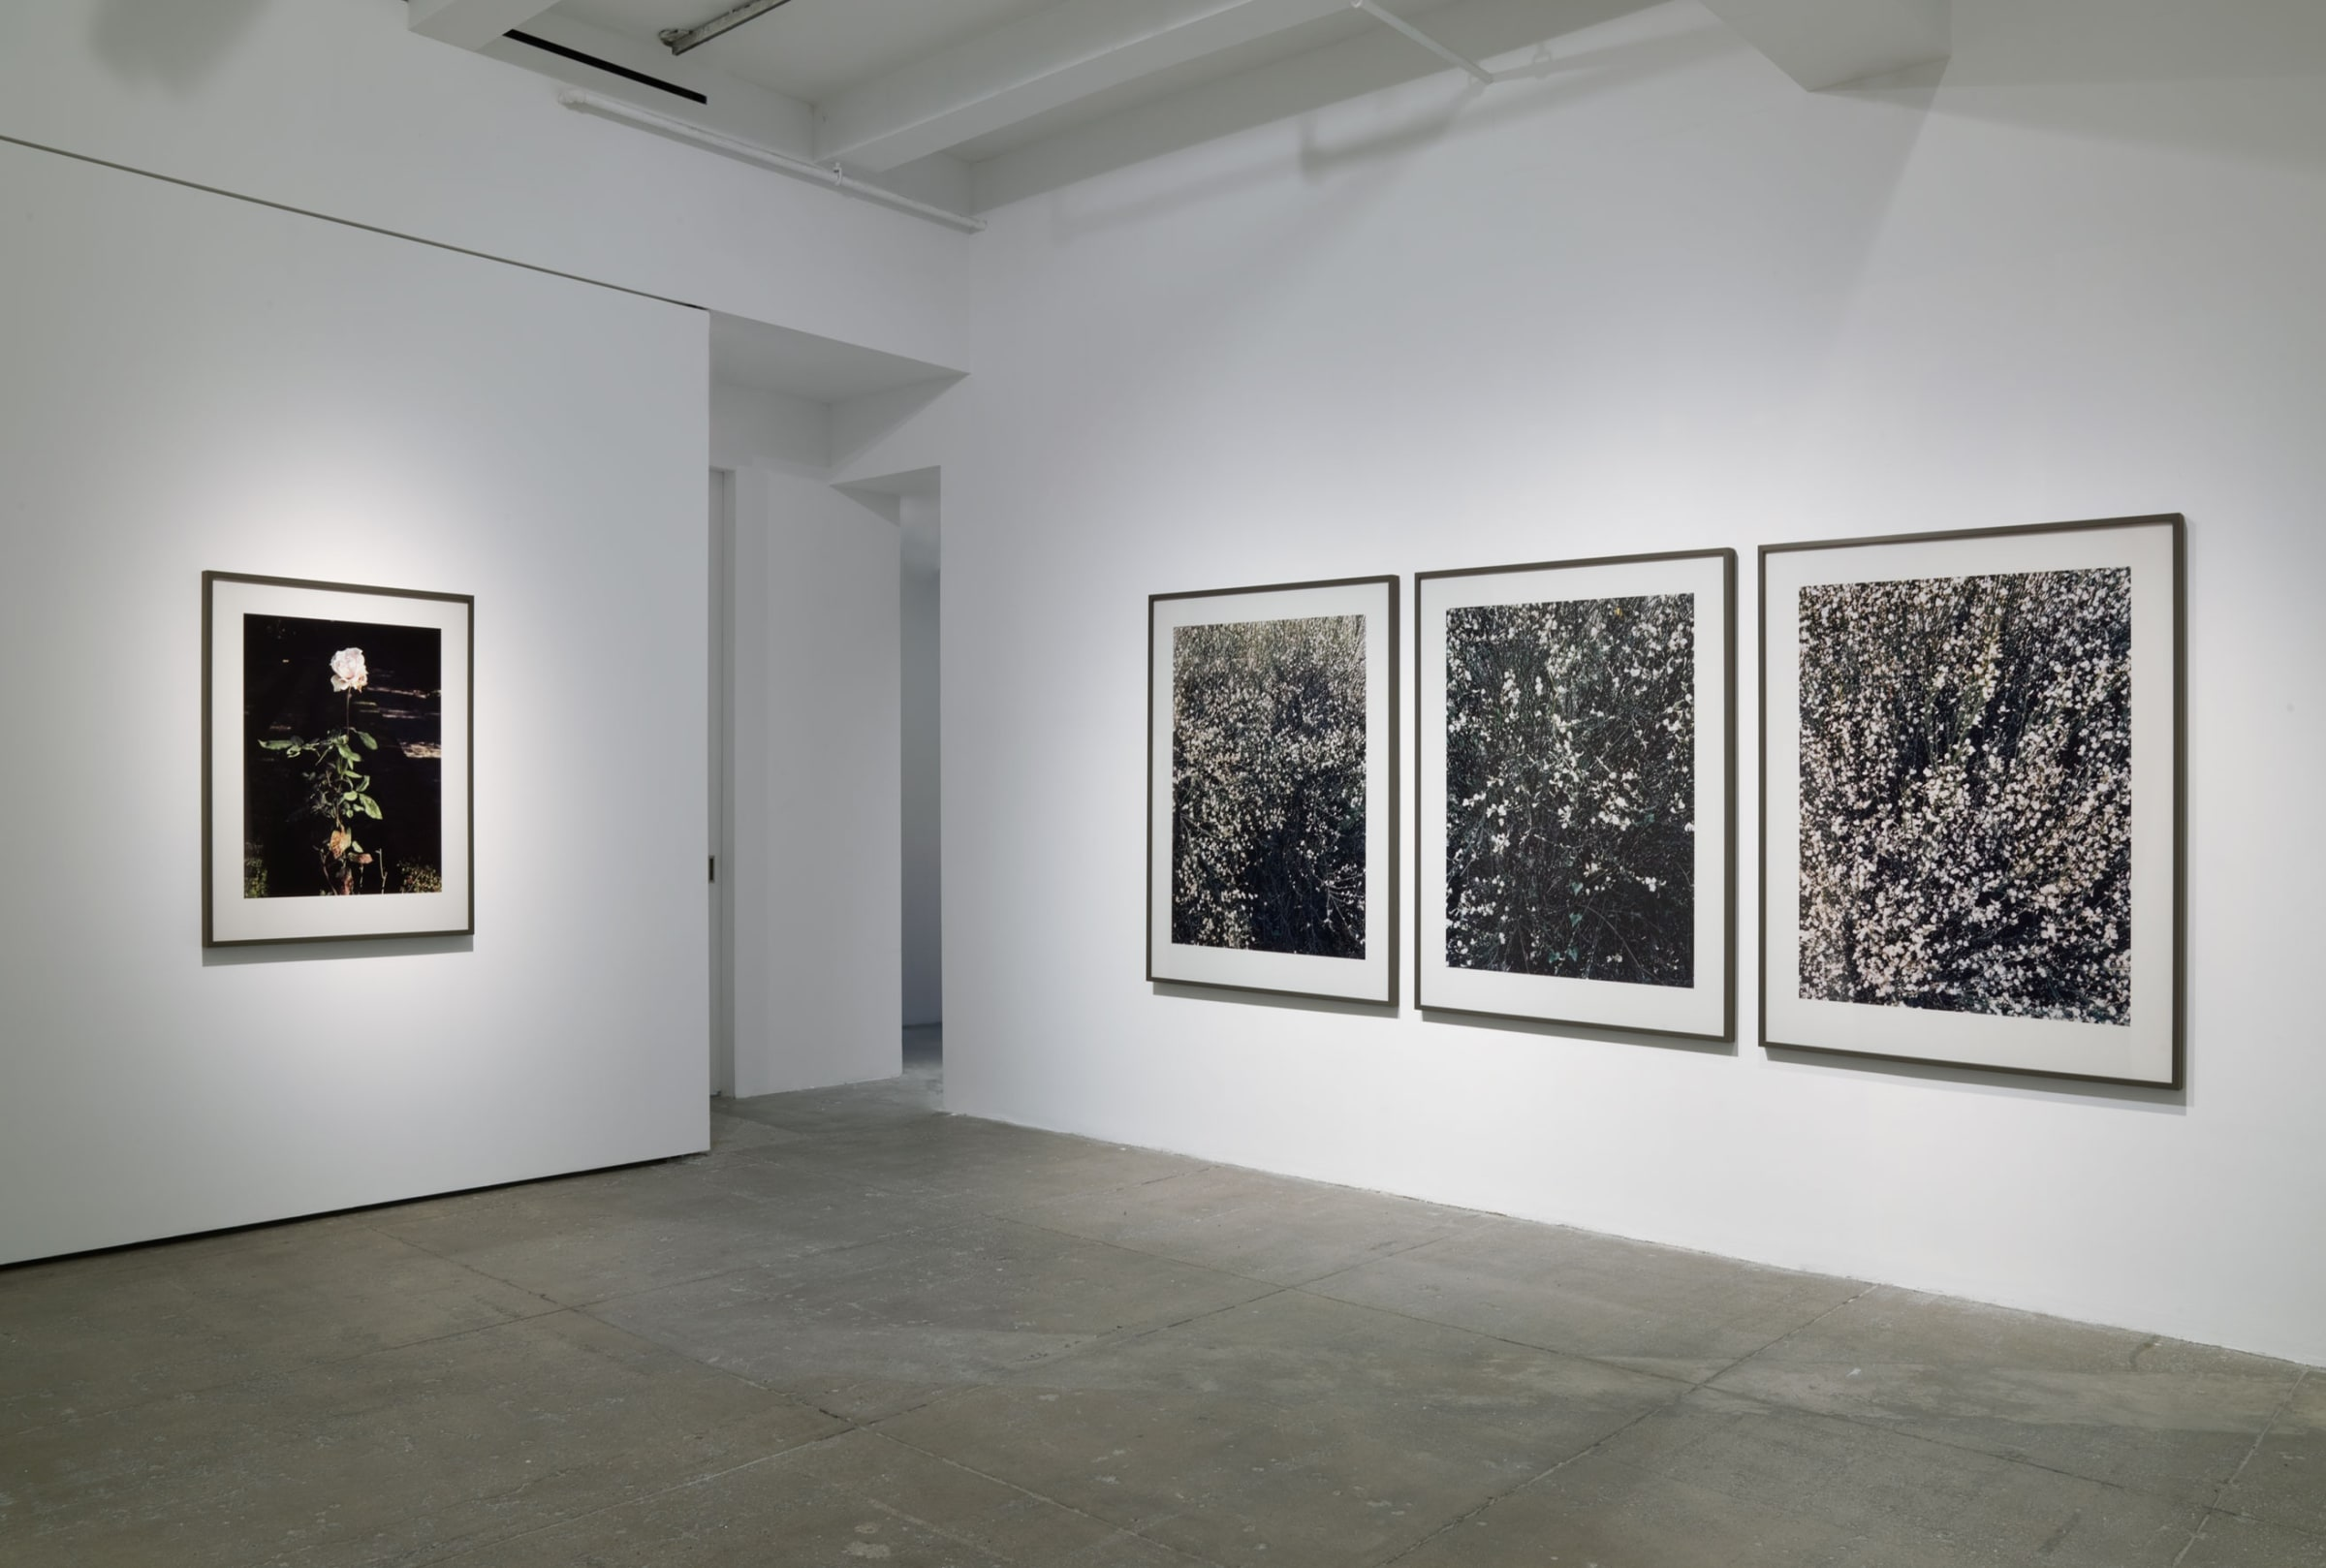 Four framed photographs in the corner of a room depict a single white rose and close-ups of bushes.